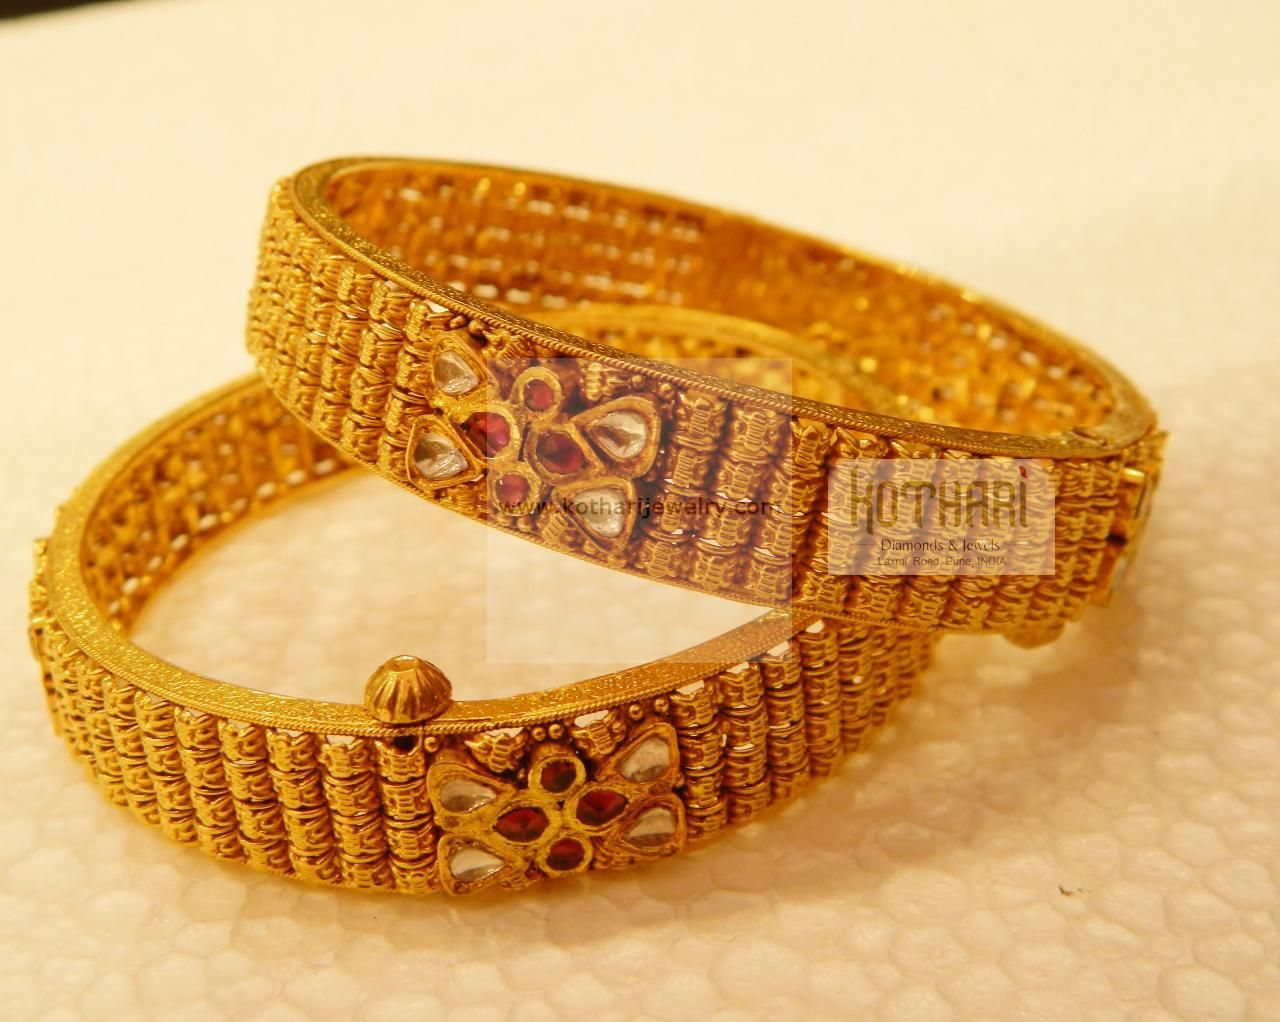 bluestone the bangles com plain bracelet gold bangle pics shiza